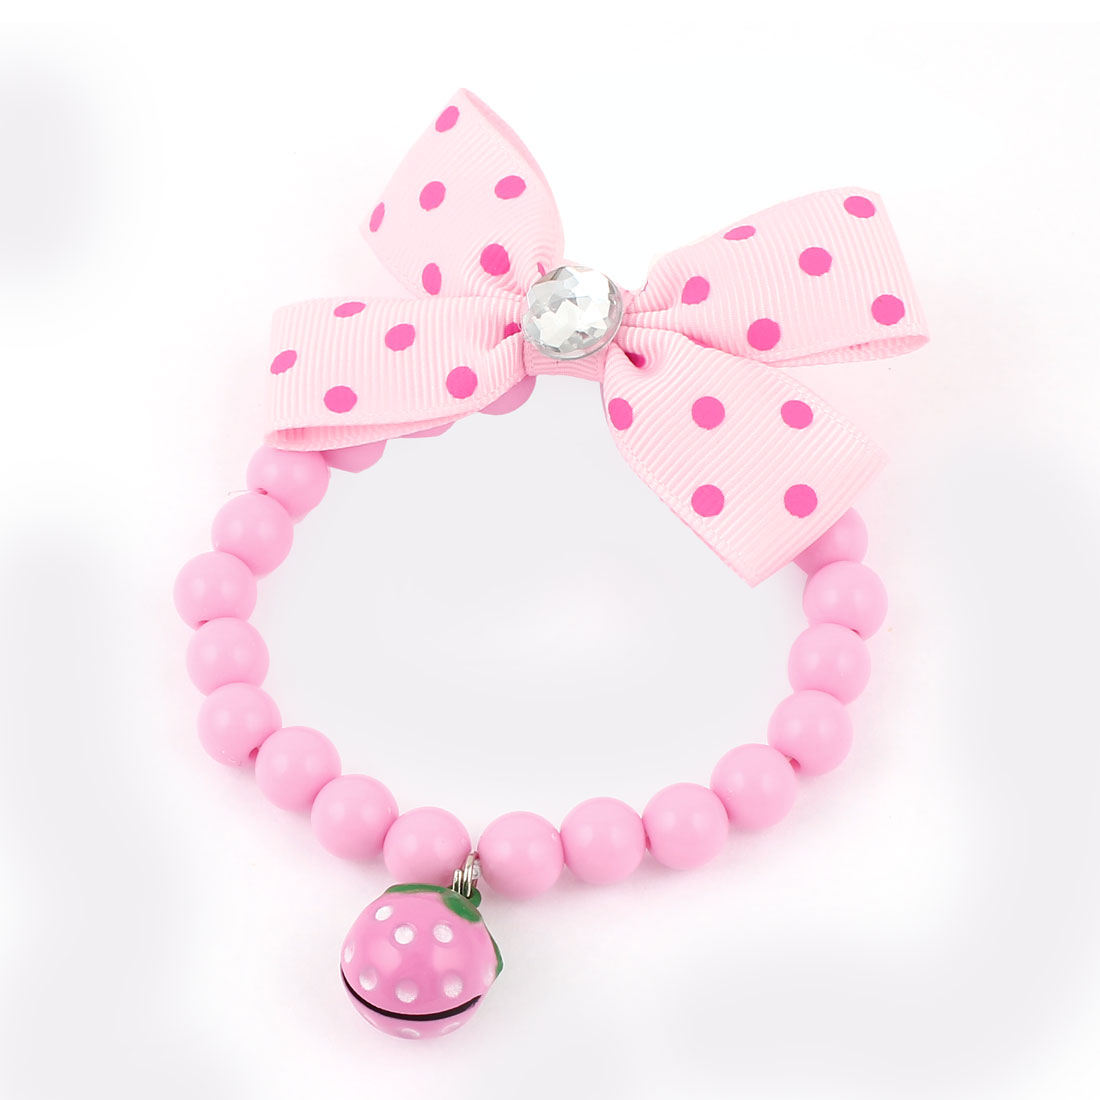 Metal Bell Pendant Bowtie Accent Pet Dog Plastic Round Beads Collar Necklace Pink XS